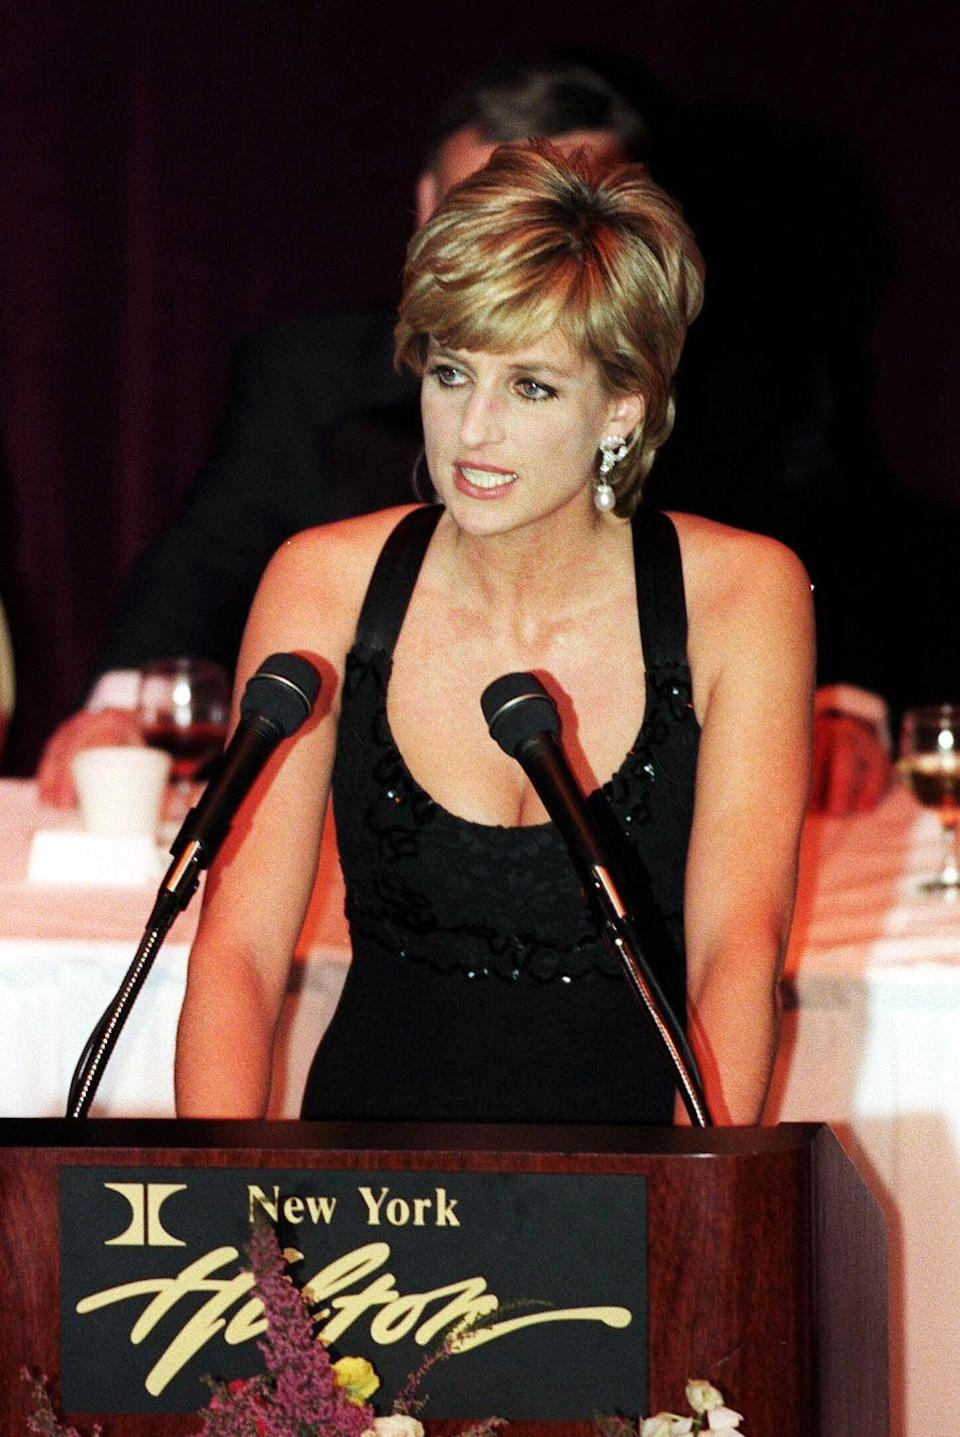 "<p>Princess Diana also told Bashir about her struggles with bulimia, which she said resulted from the stress she felt keeping her marriage publicly intact. ""That's like a secret disease,"" she said. ""You inflict it upon yourself because your self-esteem is at a low ebb, and you don't think you're worthy or valuable ... It's a repetitive pattern which is very destructive to yourself.""</p><p>Her heart-wrenching honesty is one of the reasons why her sons and daughters-in-law are so passionate about their own work in mental health.</p>"